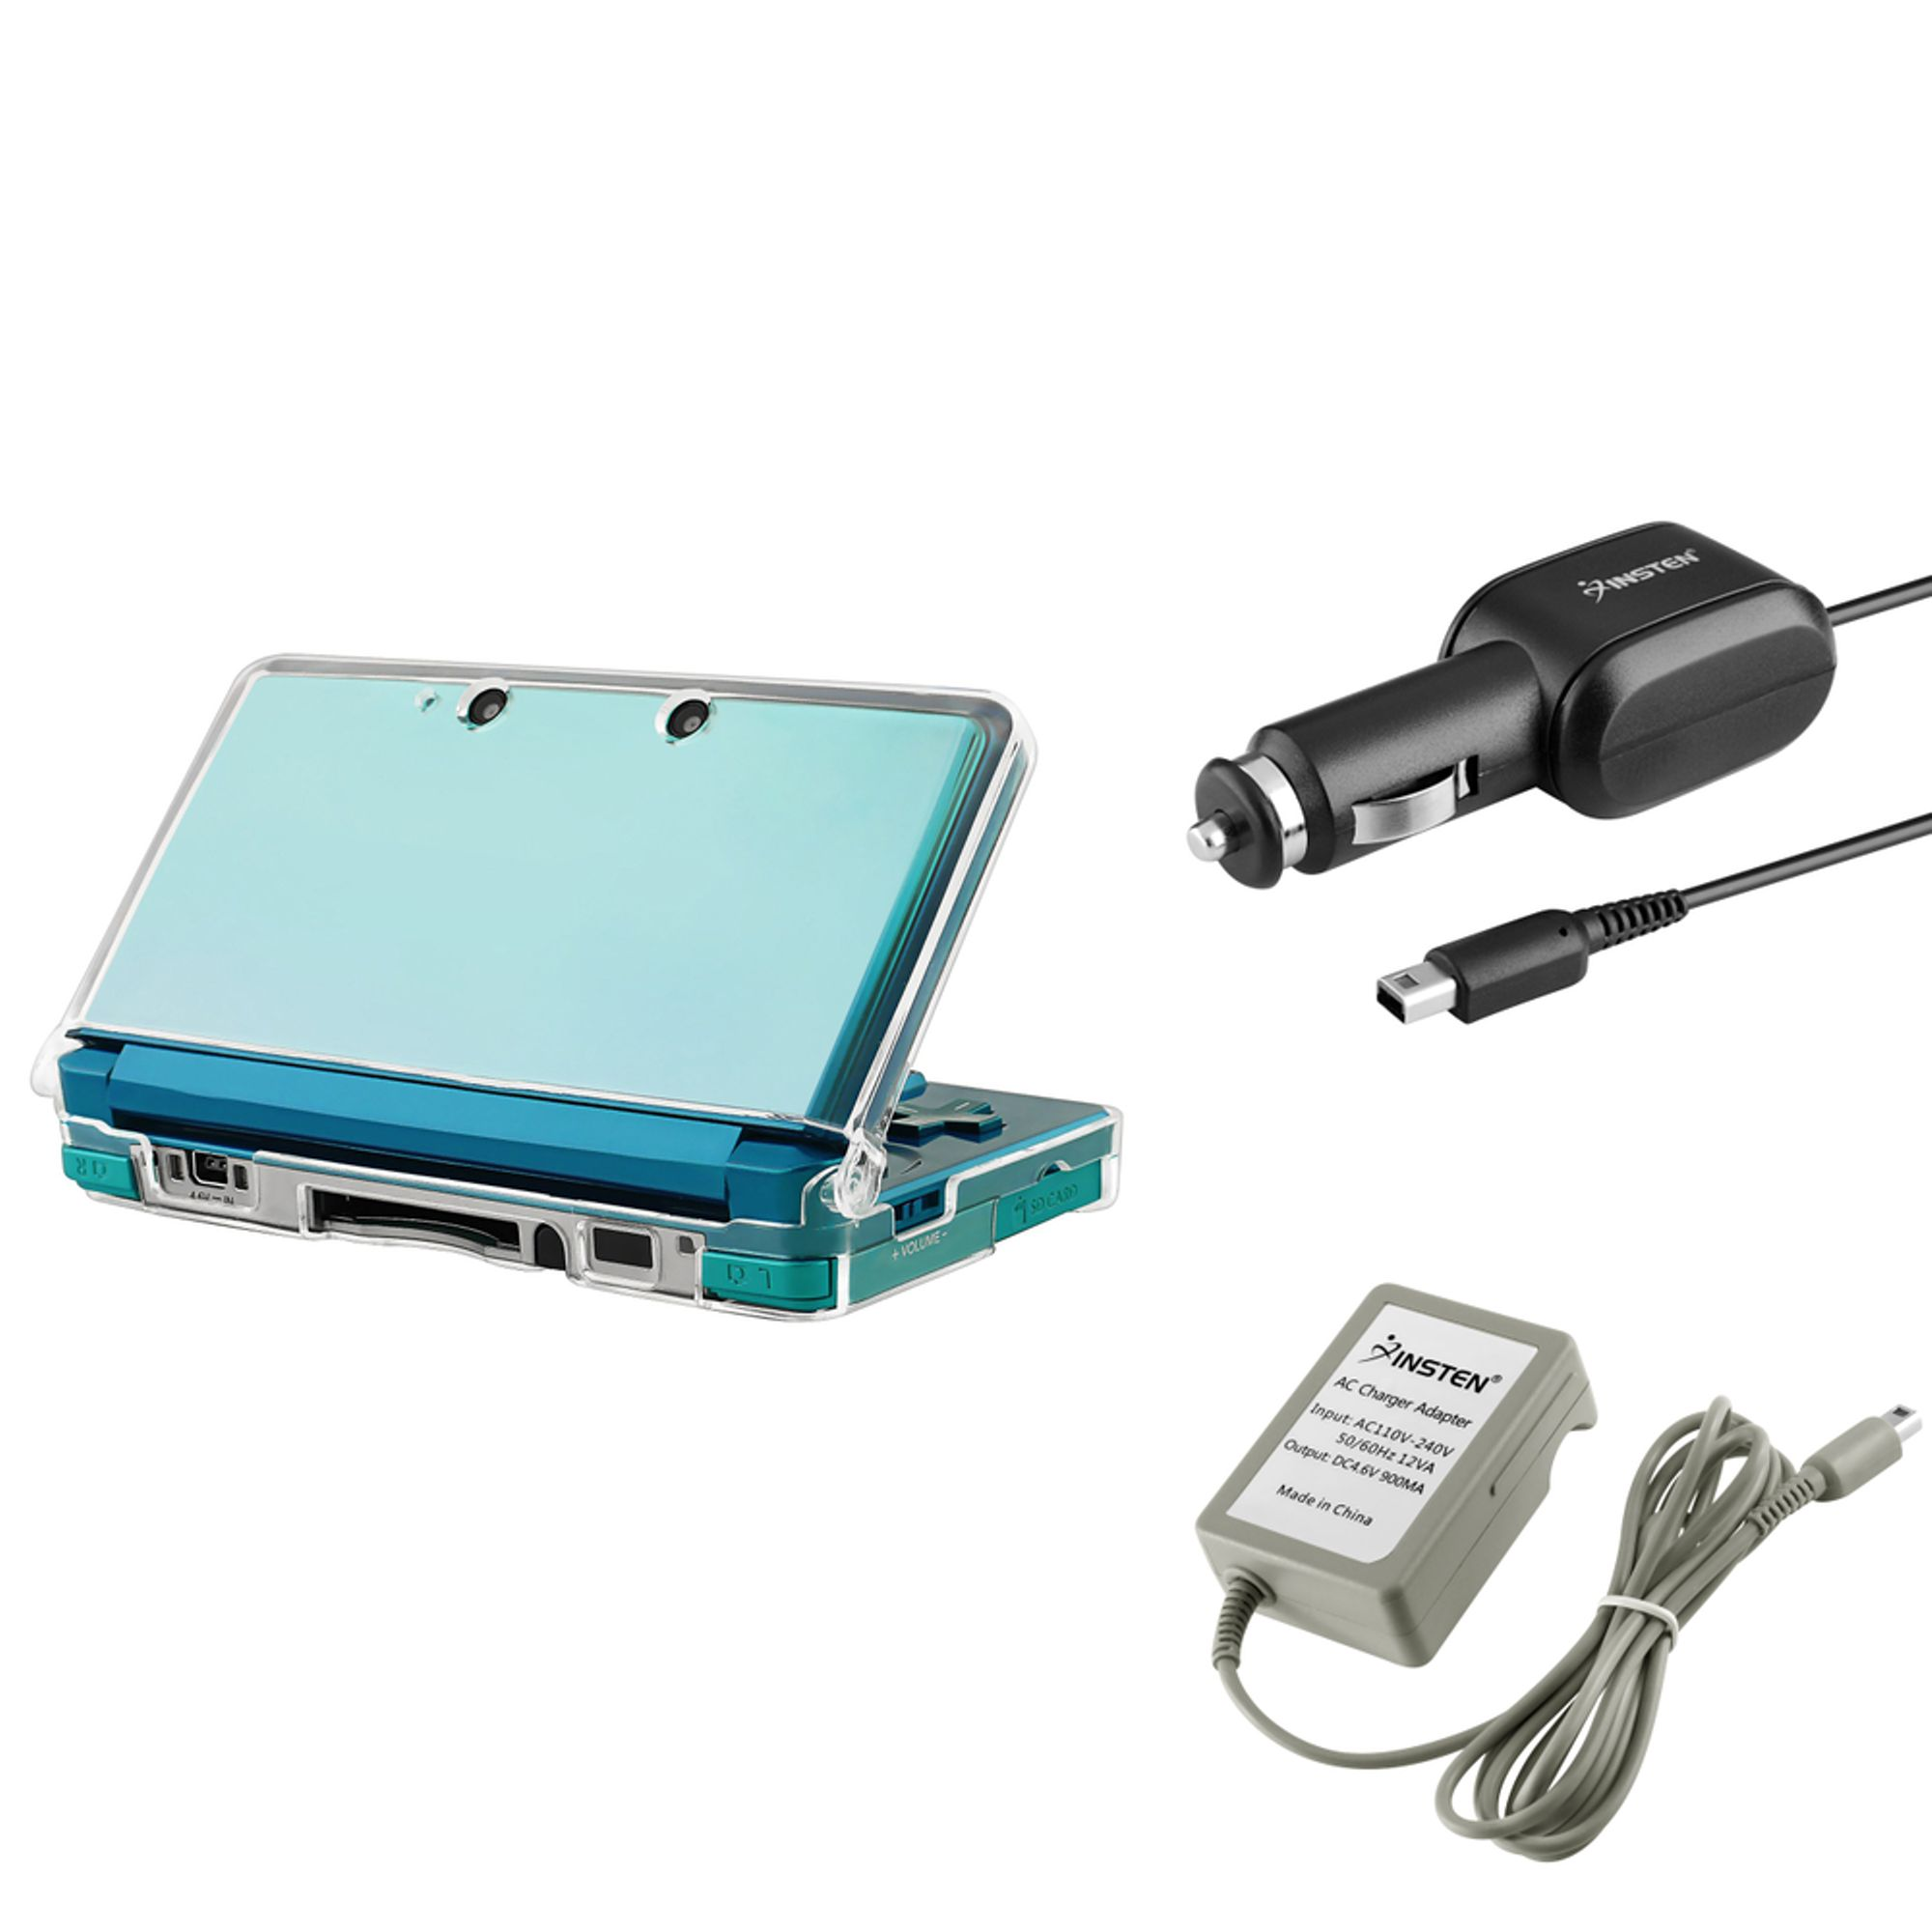 Insten Nintendo 3DS Bundle - Clear Crystal Hard Case + Car Charger + Travel AC Wall Charger (3-in-1 Accessory Bundle)